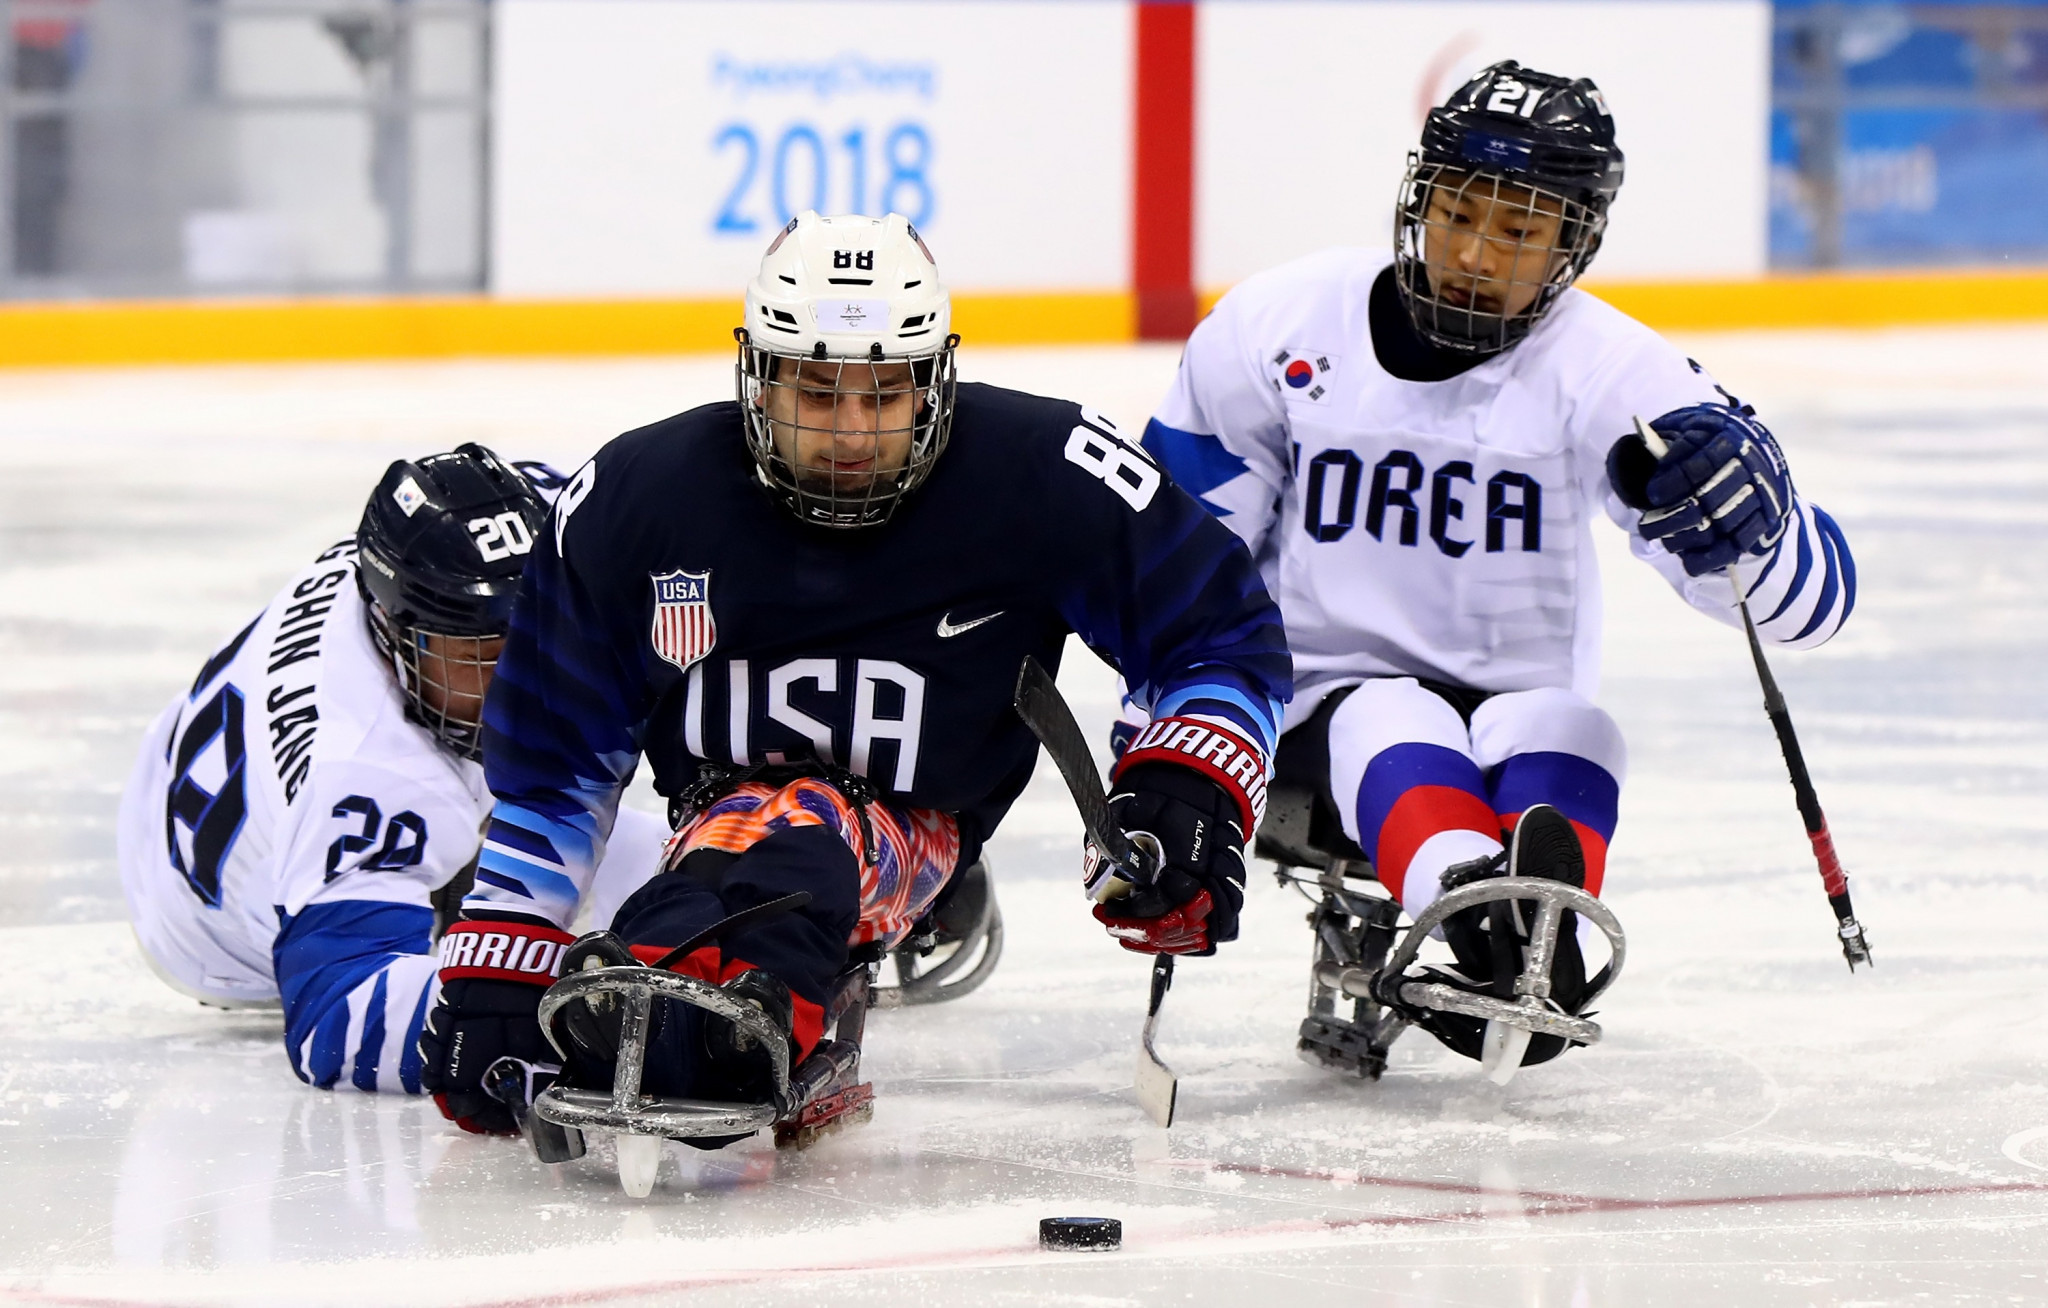 The United States thrashed hosts South Korea 8-0 to complete an unbeaten record in Group B of the ice hockey tournament ©Getty Images